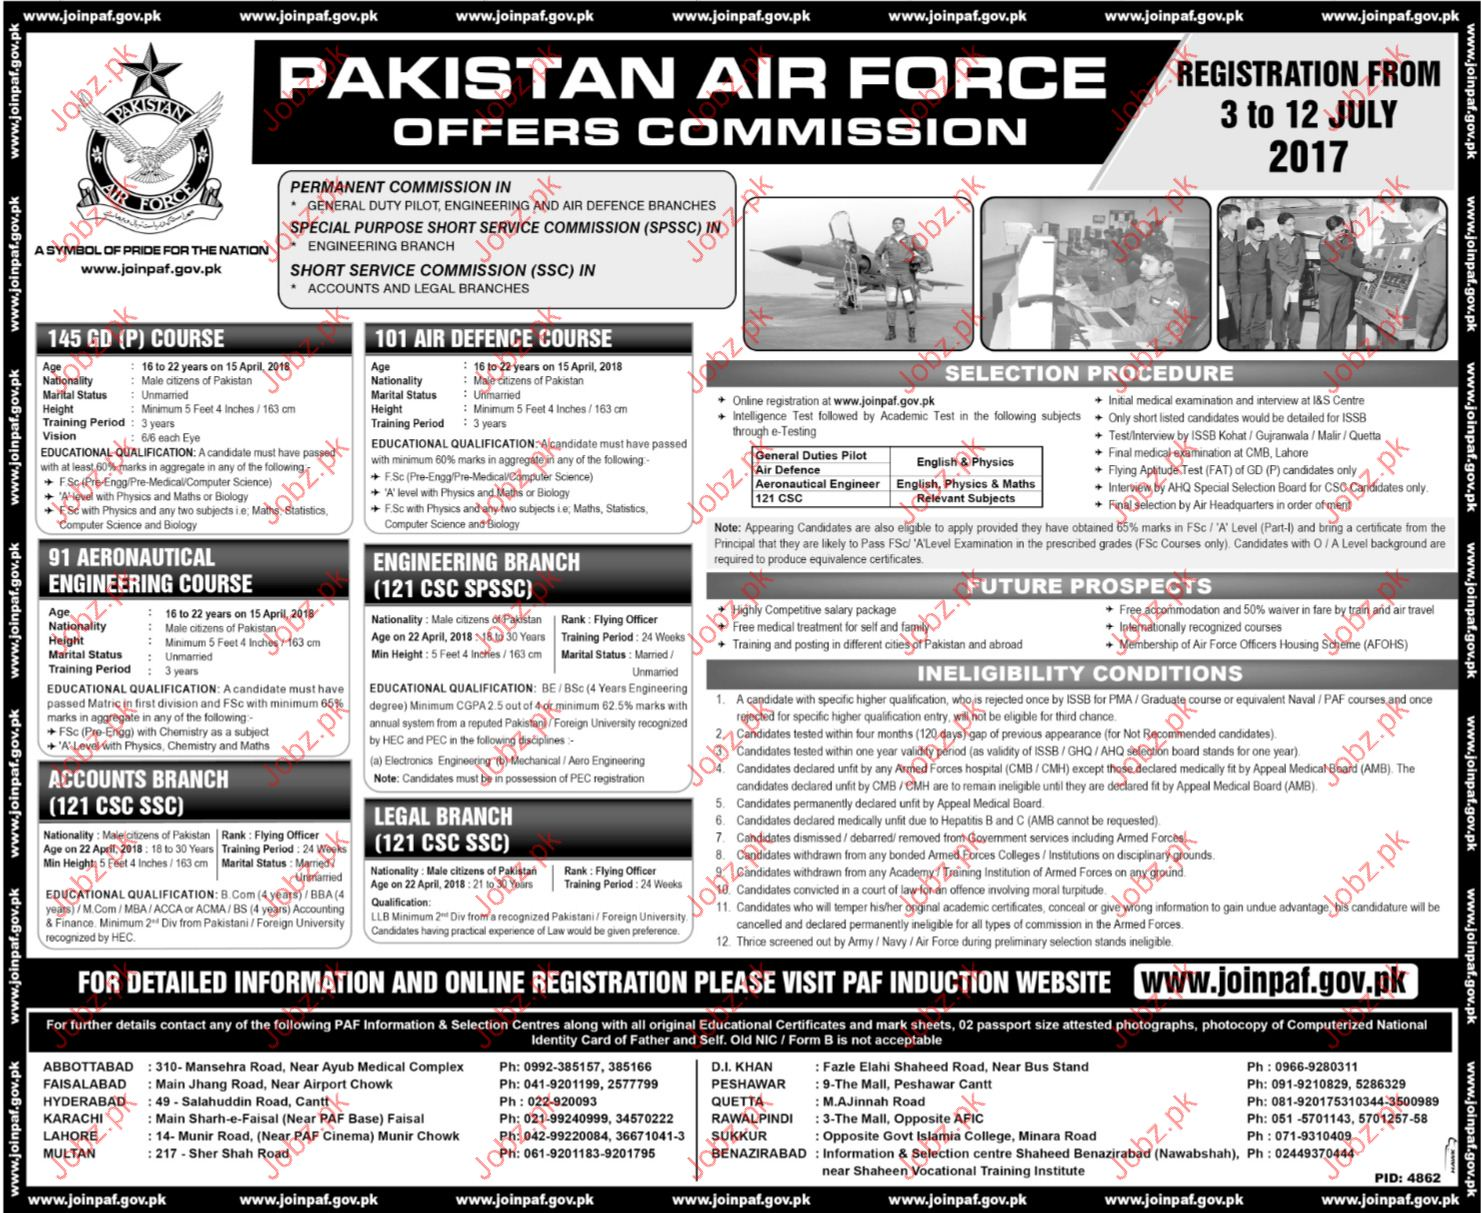 Pakistan Air Force Officer Commission Jobs 2017